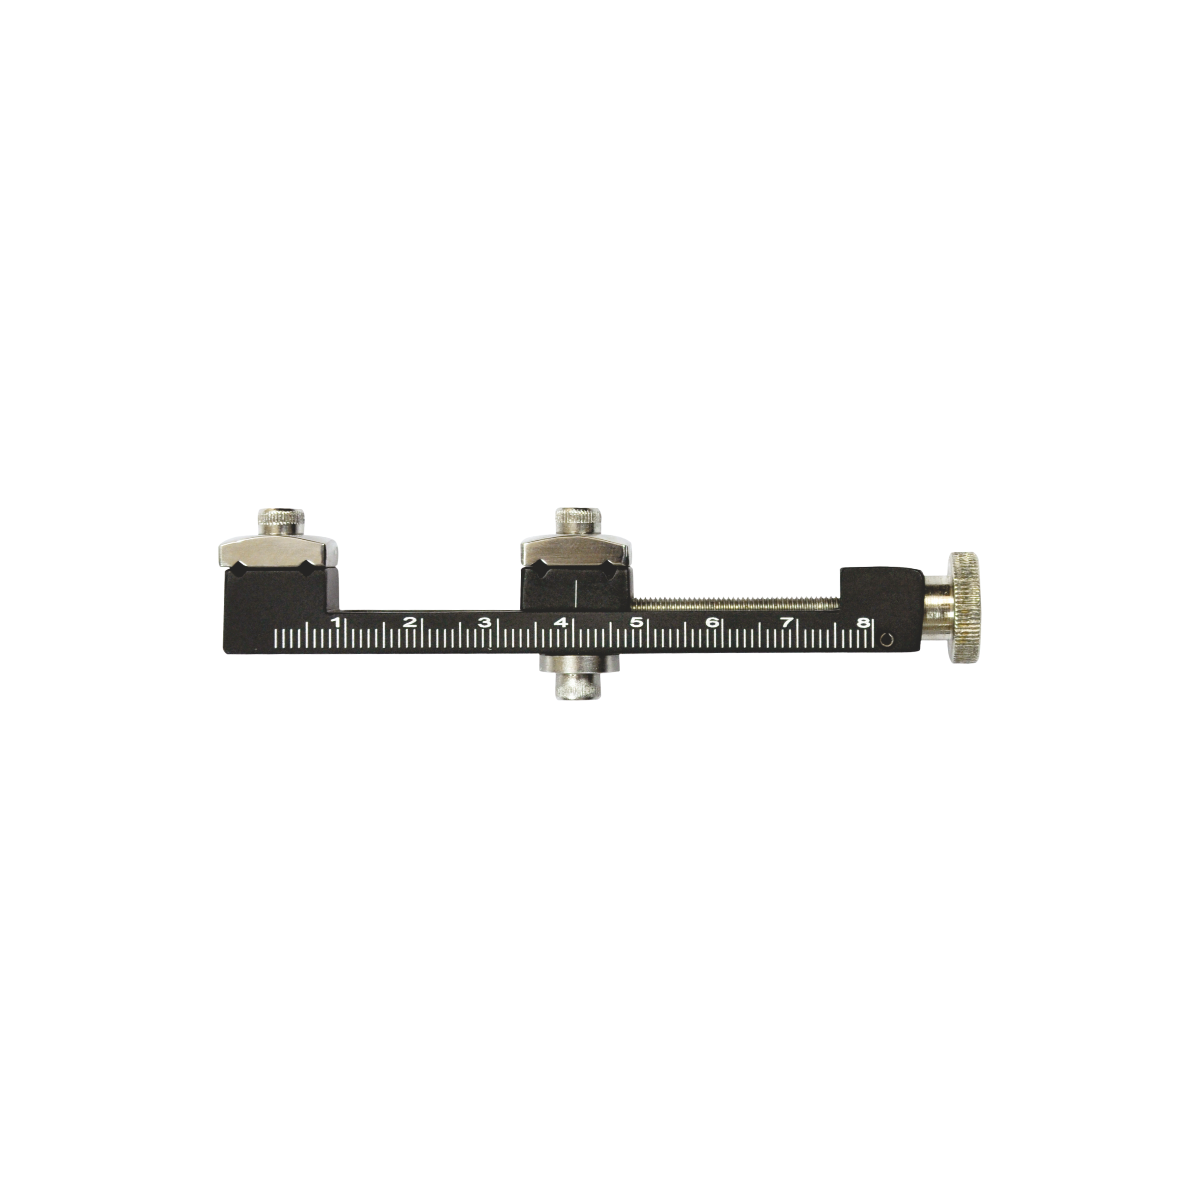 Mini Rail With Scale (For 2.0mm & 2.5mm Schanz Pin)